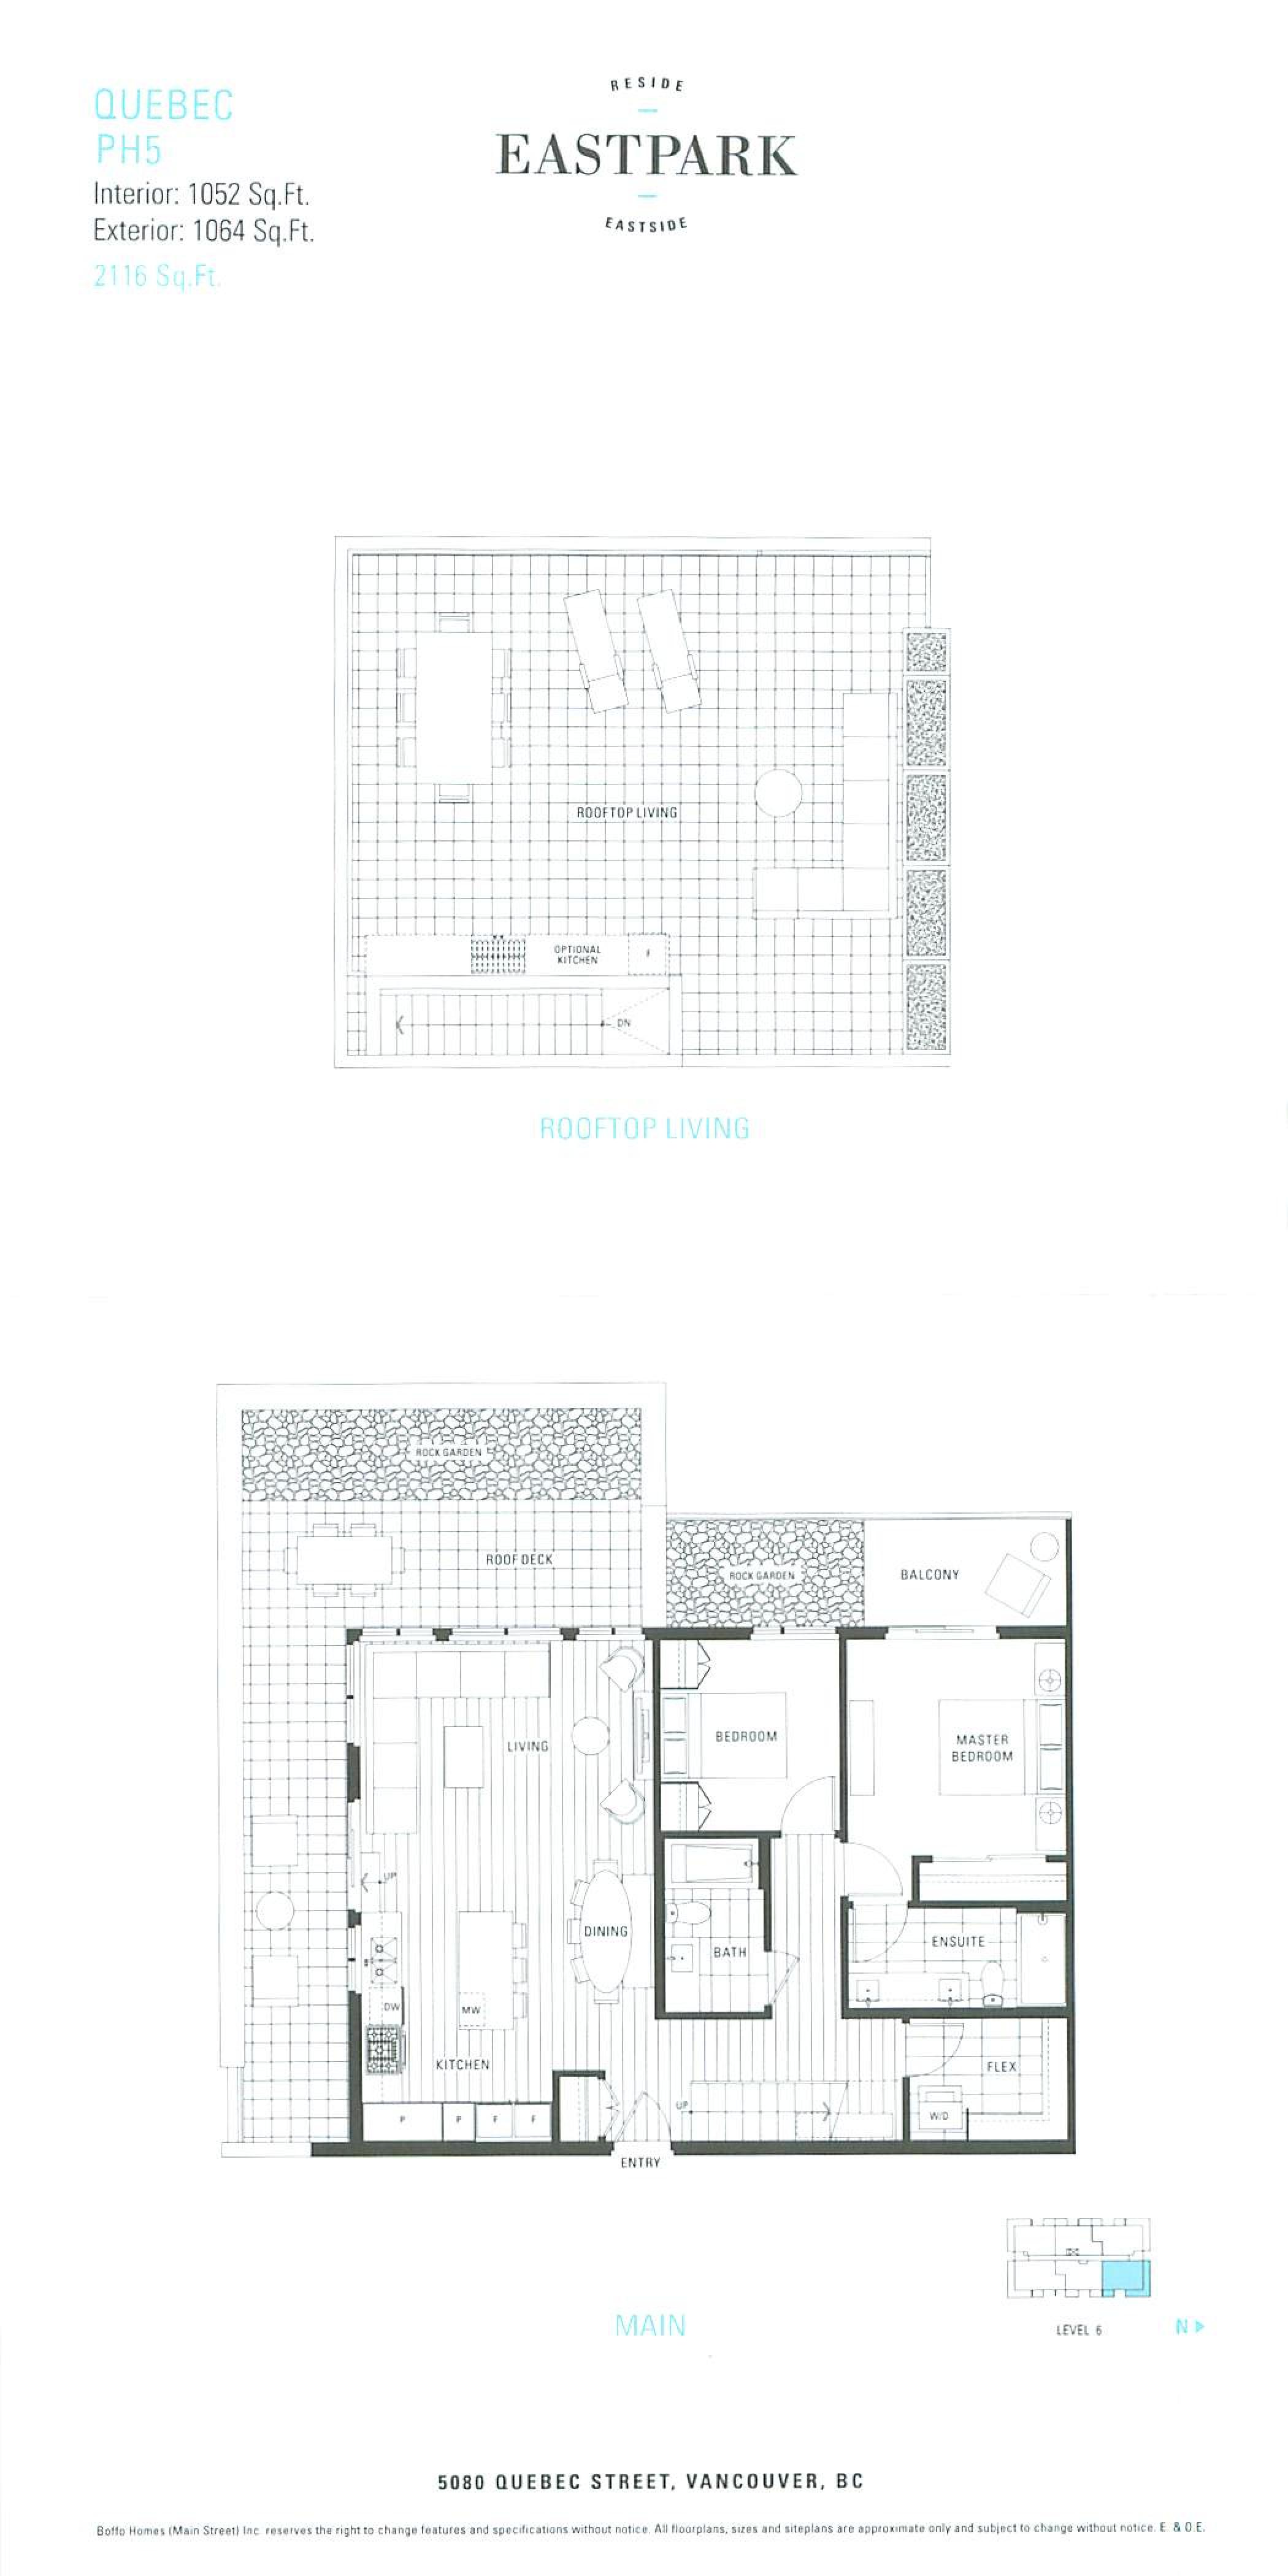 EastPark Quebec Larger Floor Plans Mike Stewart-page-004